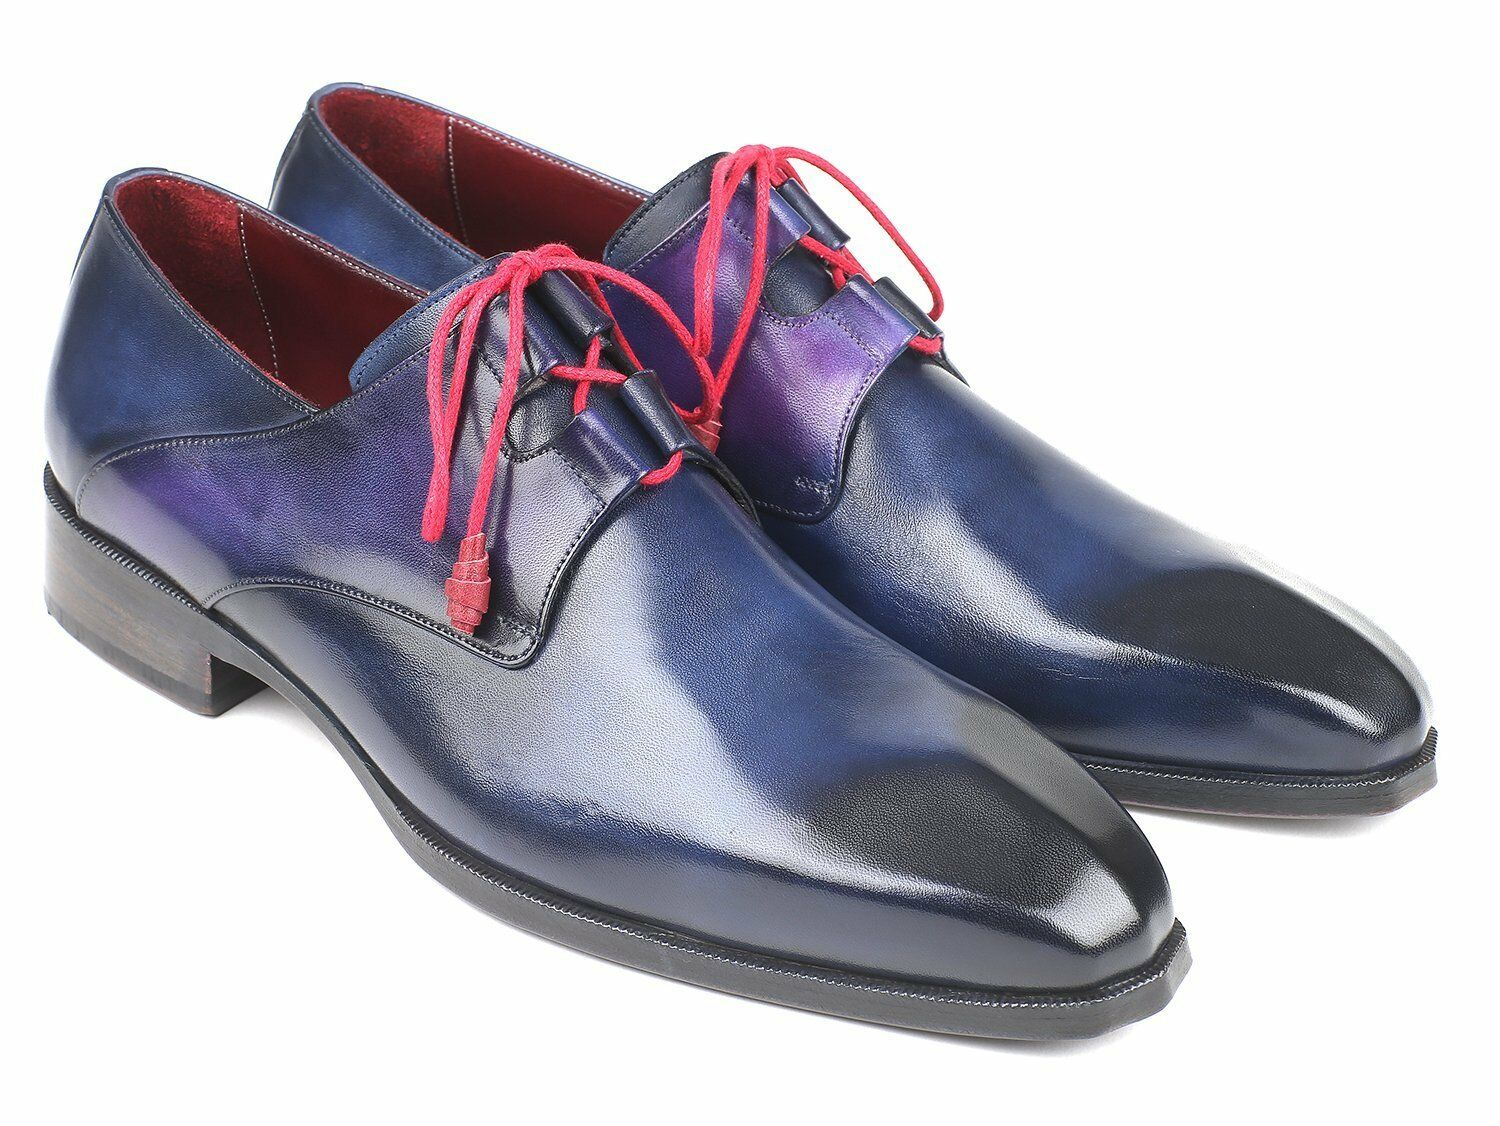 Paul Parkman Ghillie Lacing Blue Dress Shoes Handmade Scarpe classiche da uomo